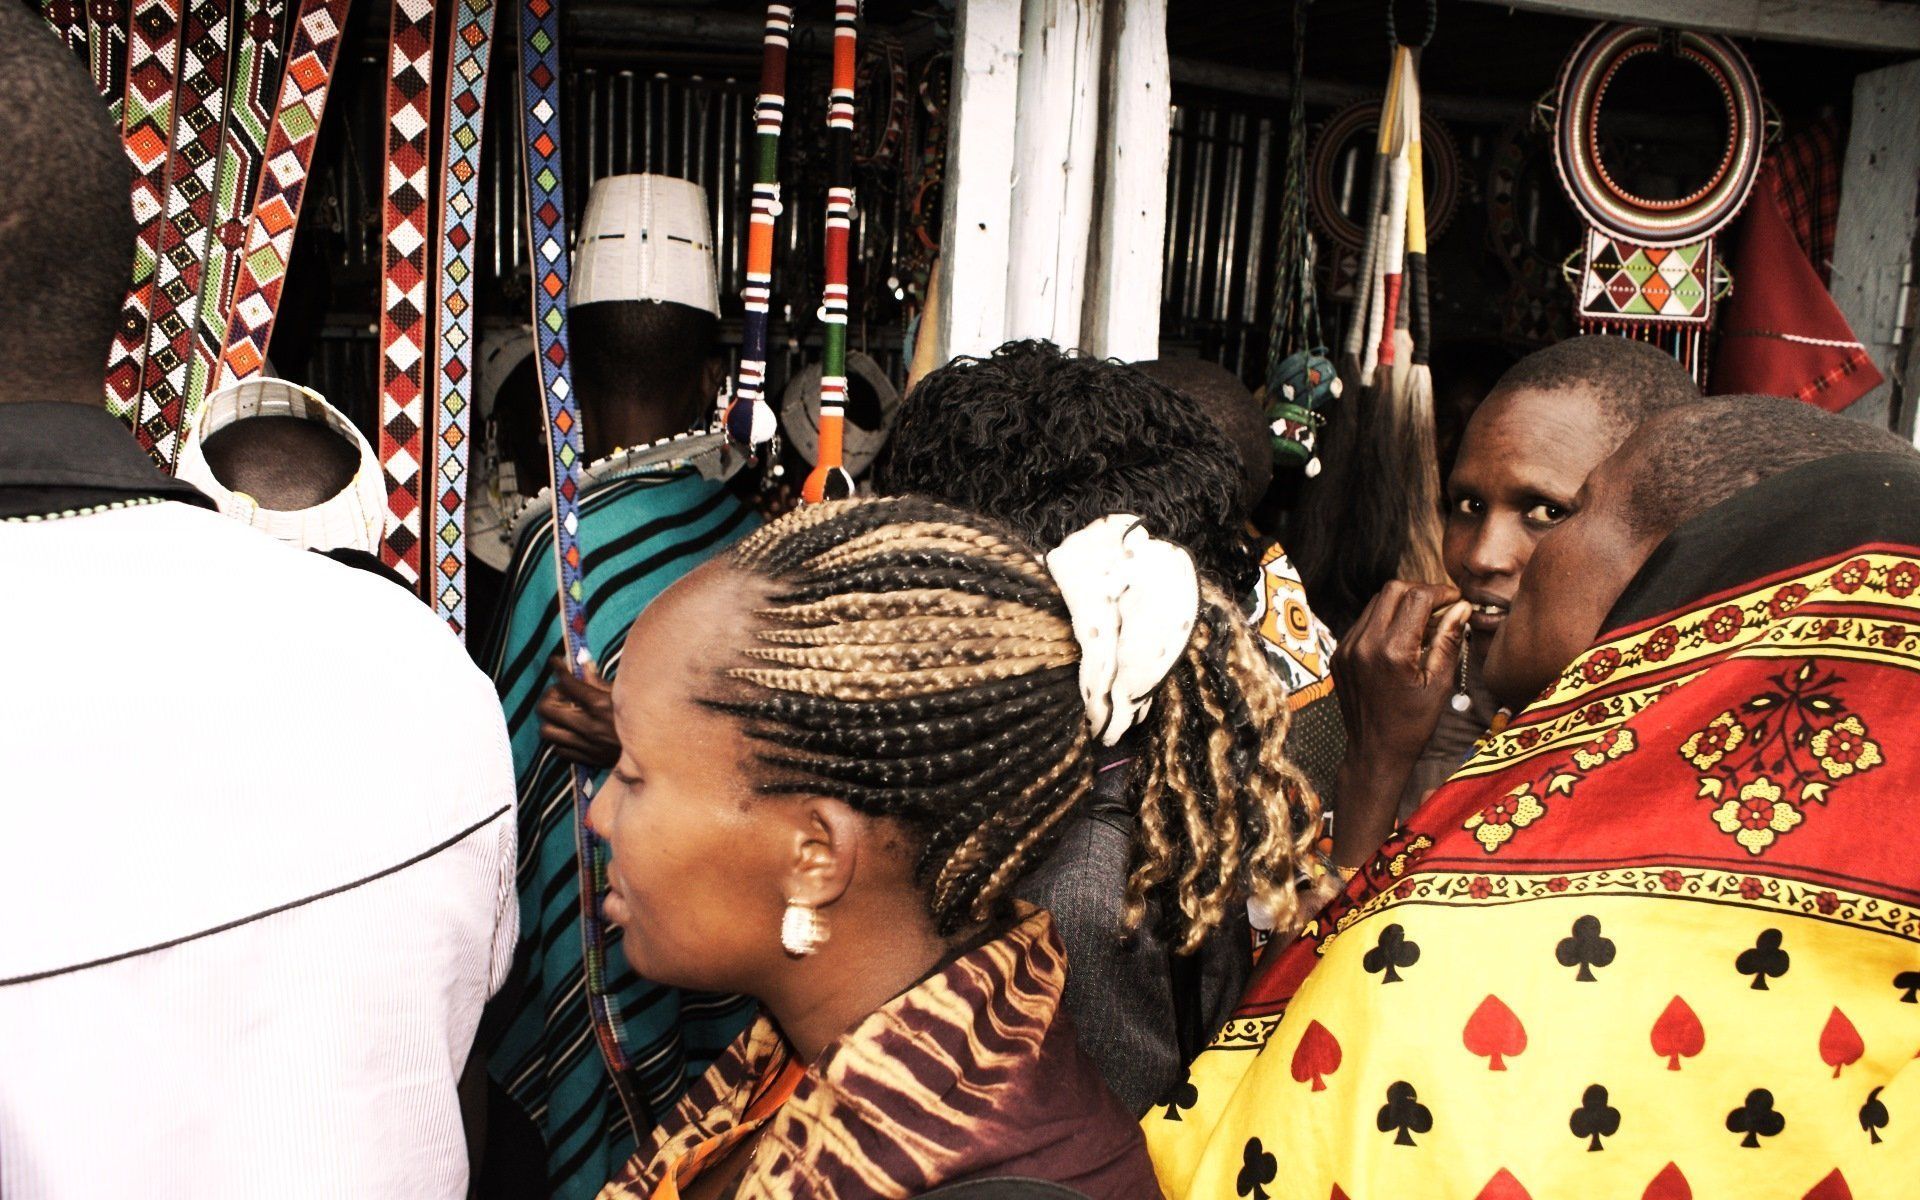 Namanga is an active transit point for big business between Kenya and Tanzania. Here, you will also meet the women handicraft merchants at your service.